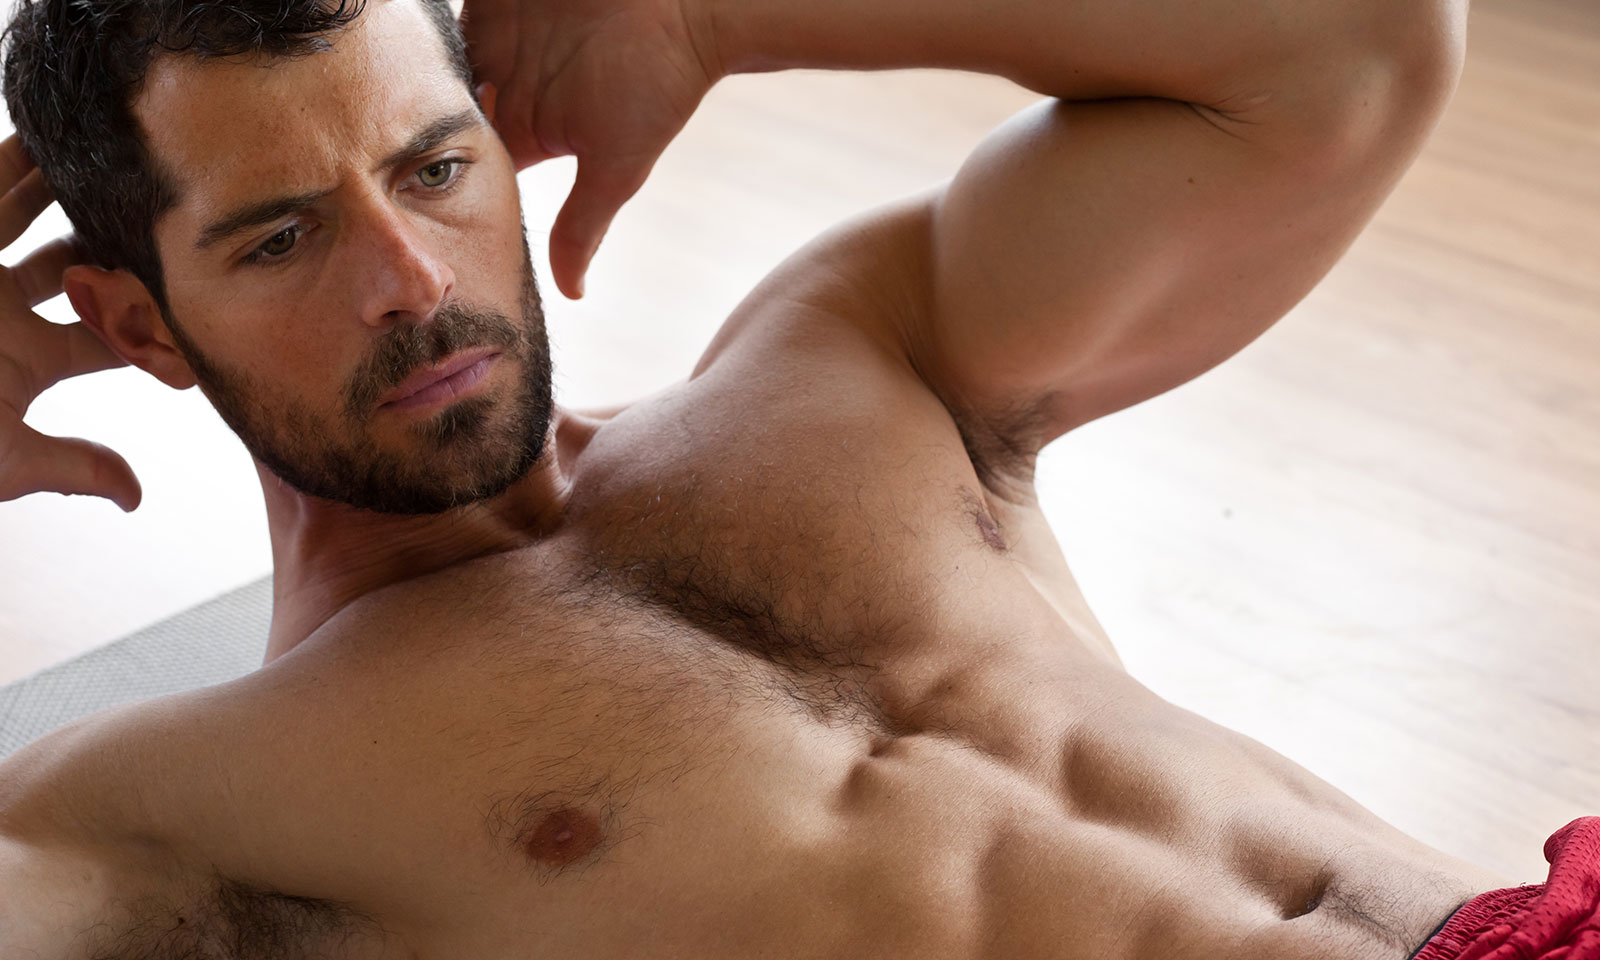 The Top 4 Amino Acid Supplements For Muscle Growth